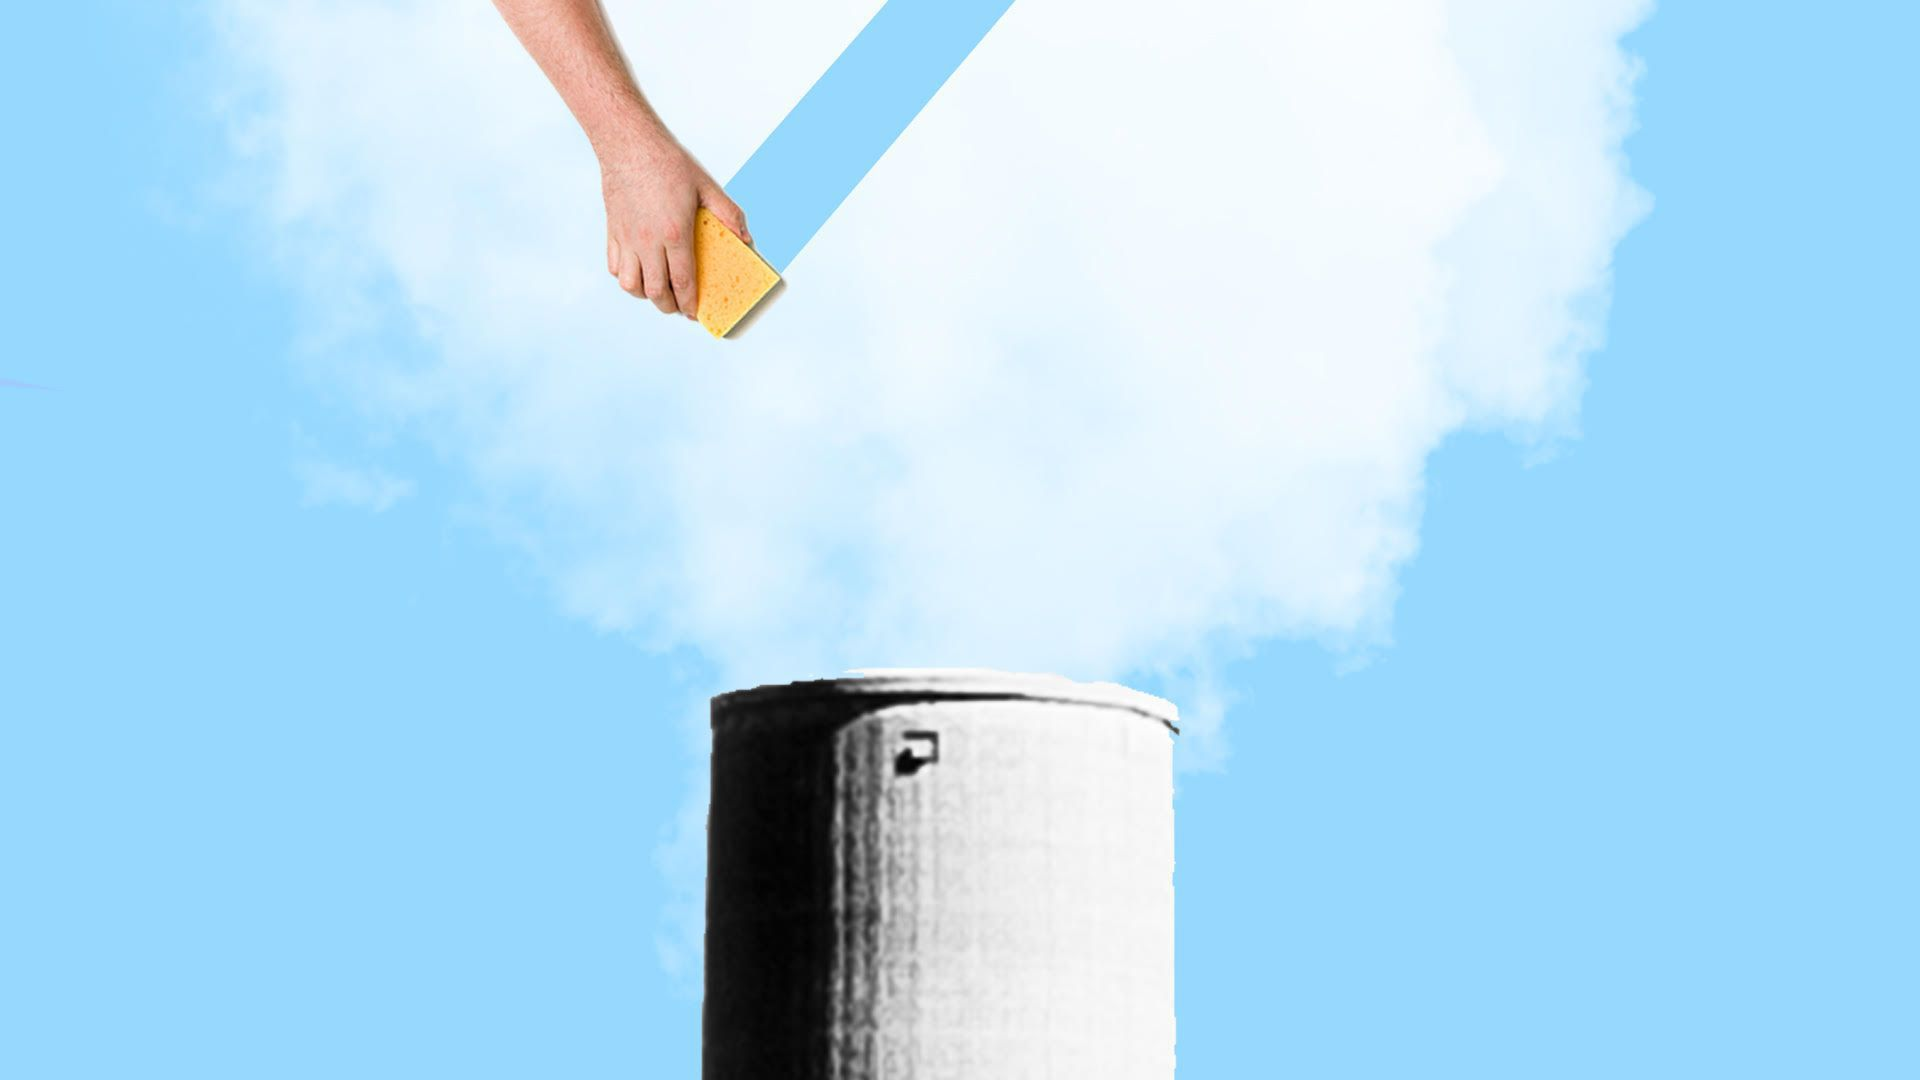 illustration of hand erasing smokestack smoke